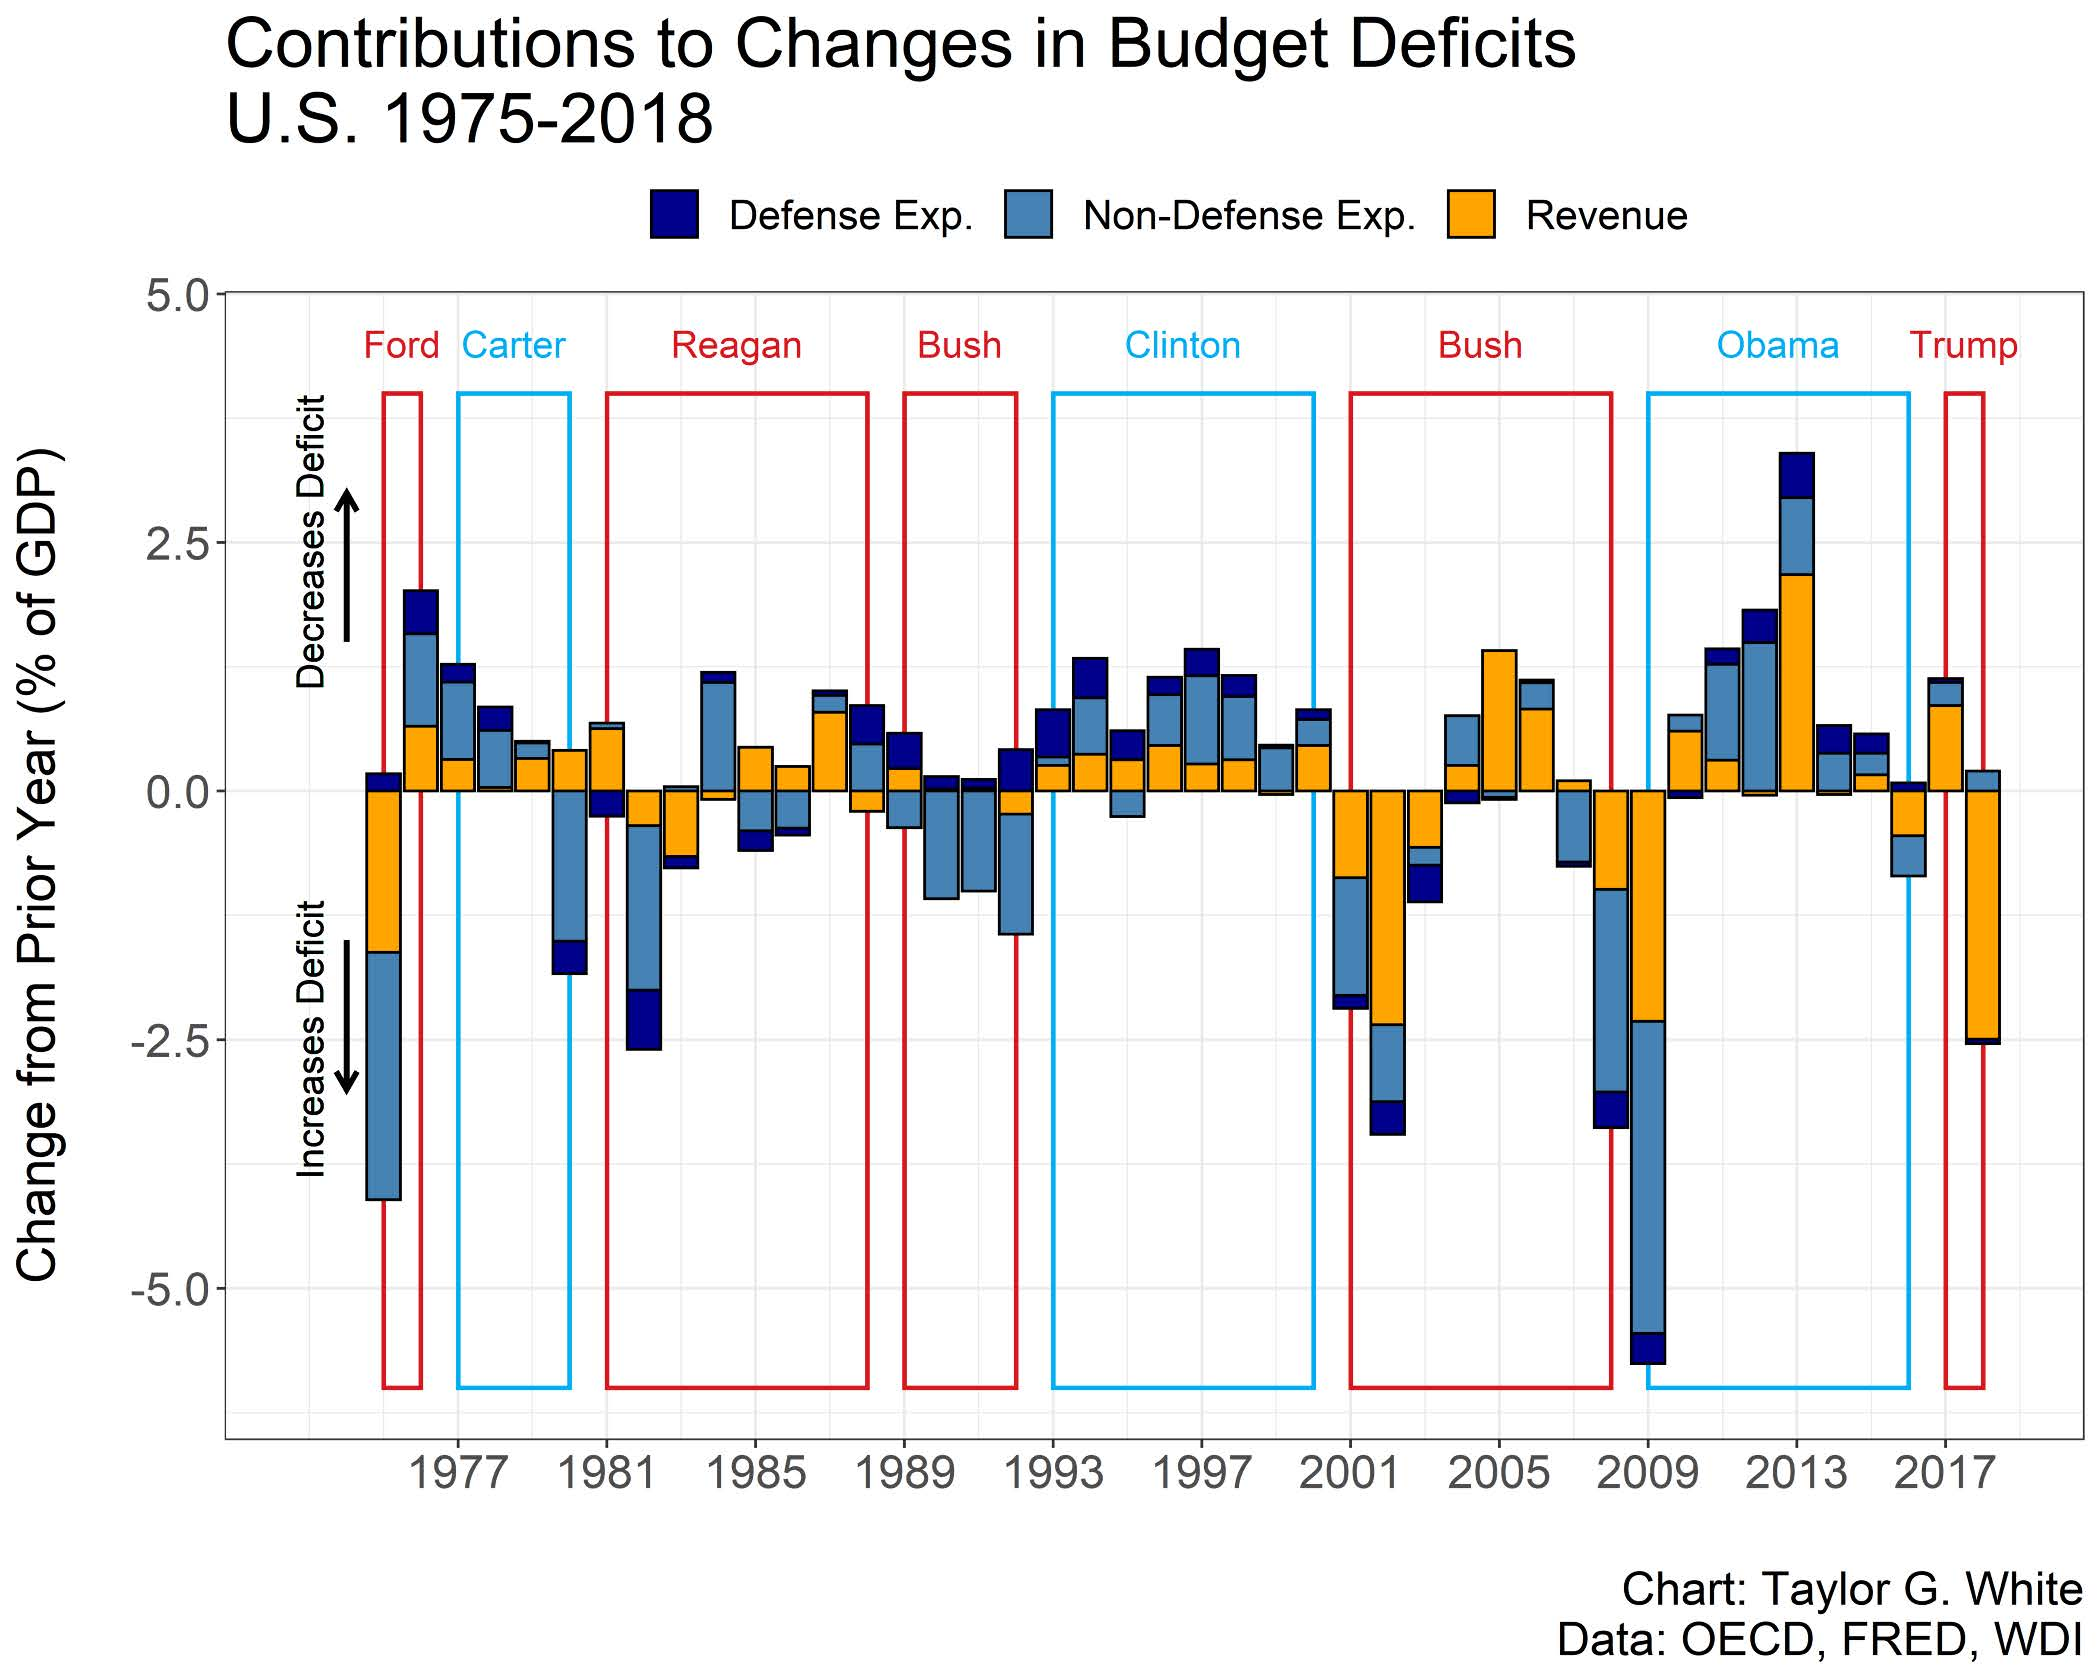 A chart showing contributions to changes in budget deficits